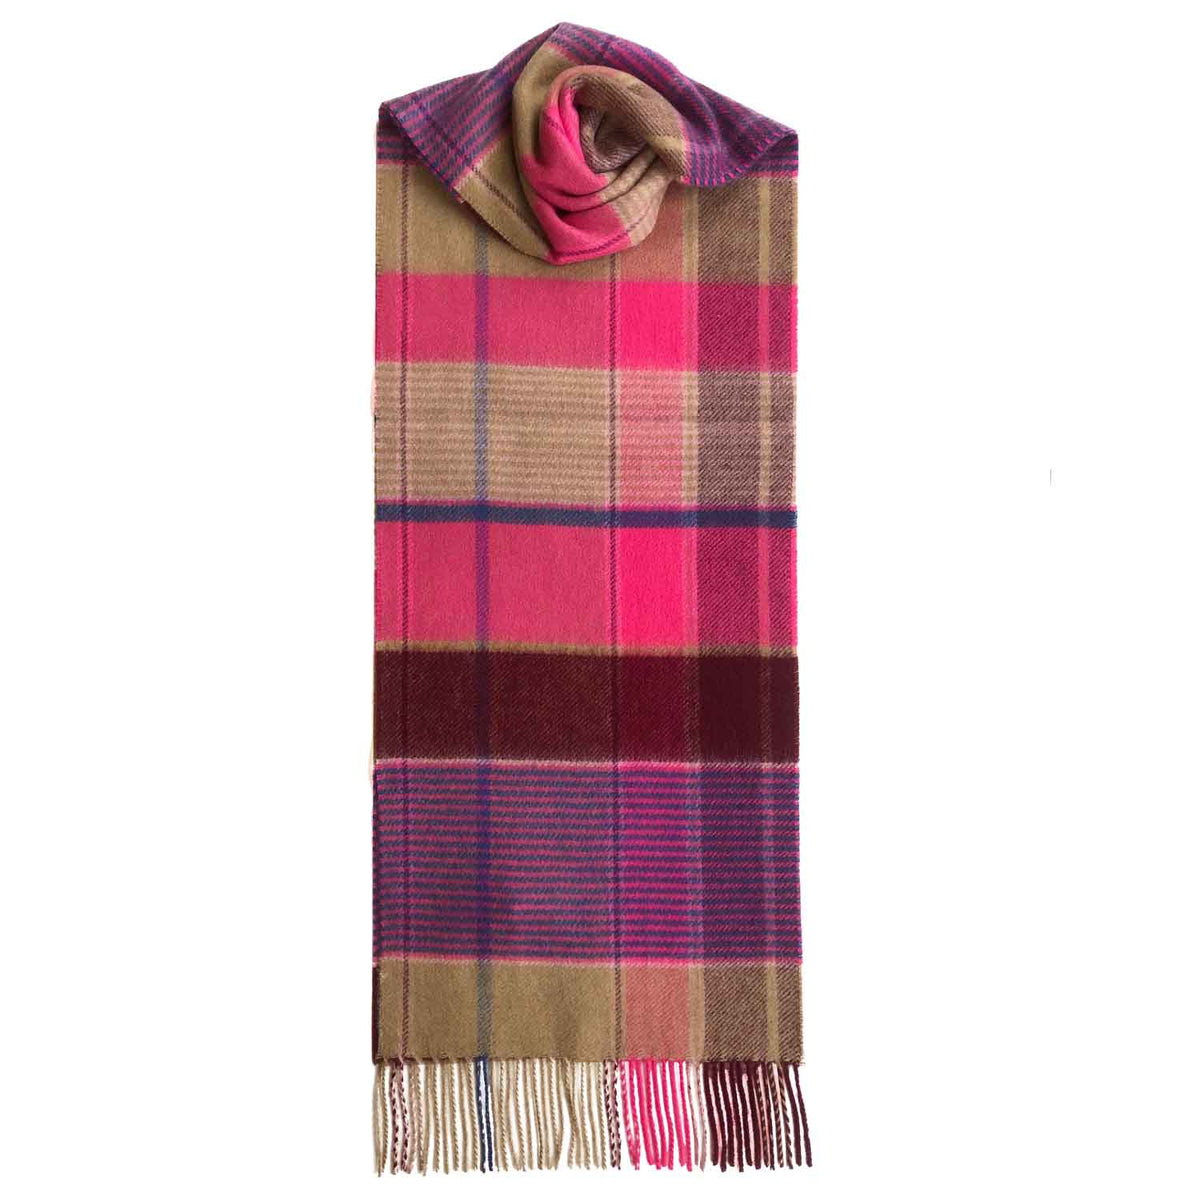 Lomond Cashmere | Beige Pink | Check Cashmere Scarf With Fringes | Made in Scotland | Shop at The Cashmere Choice | London